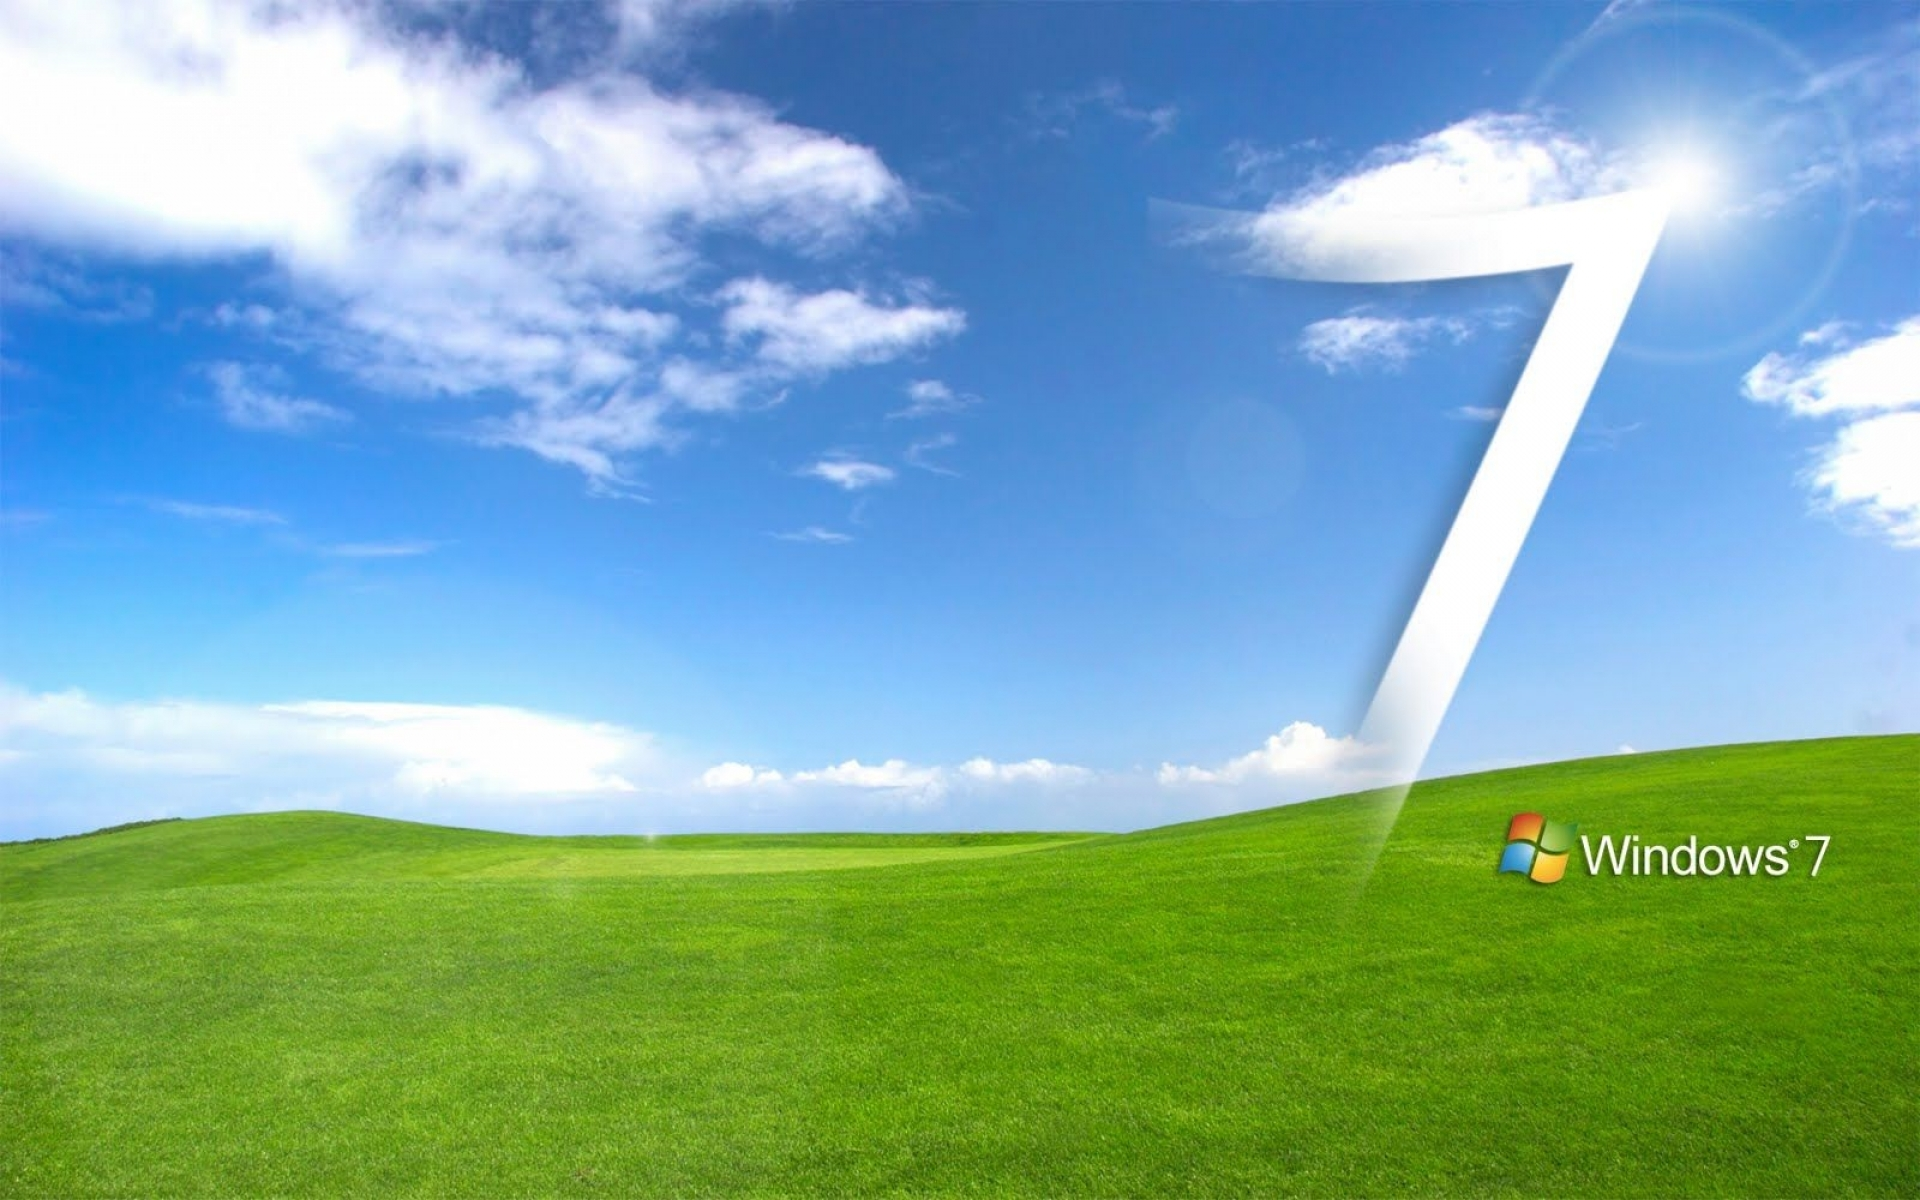 download windows wallpaper location windows 7 gallery